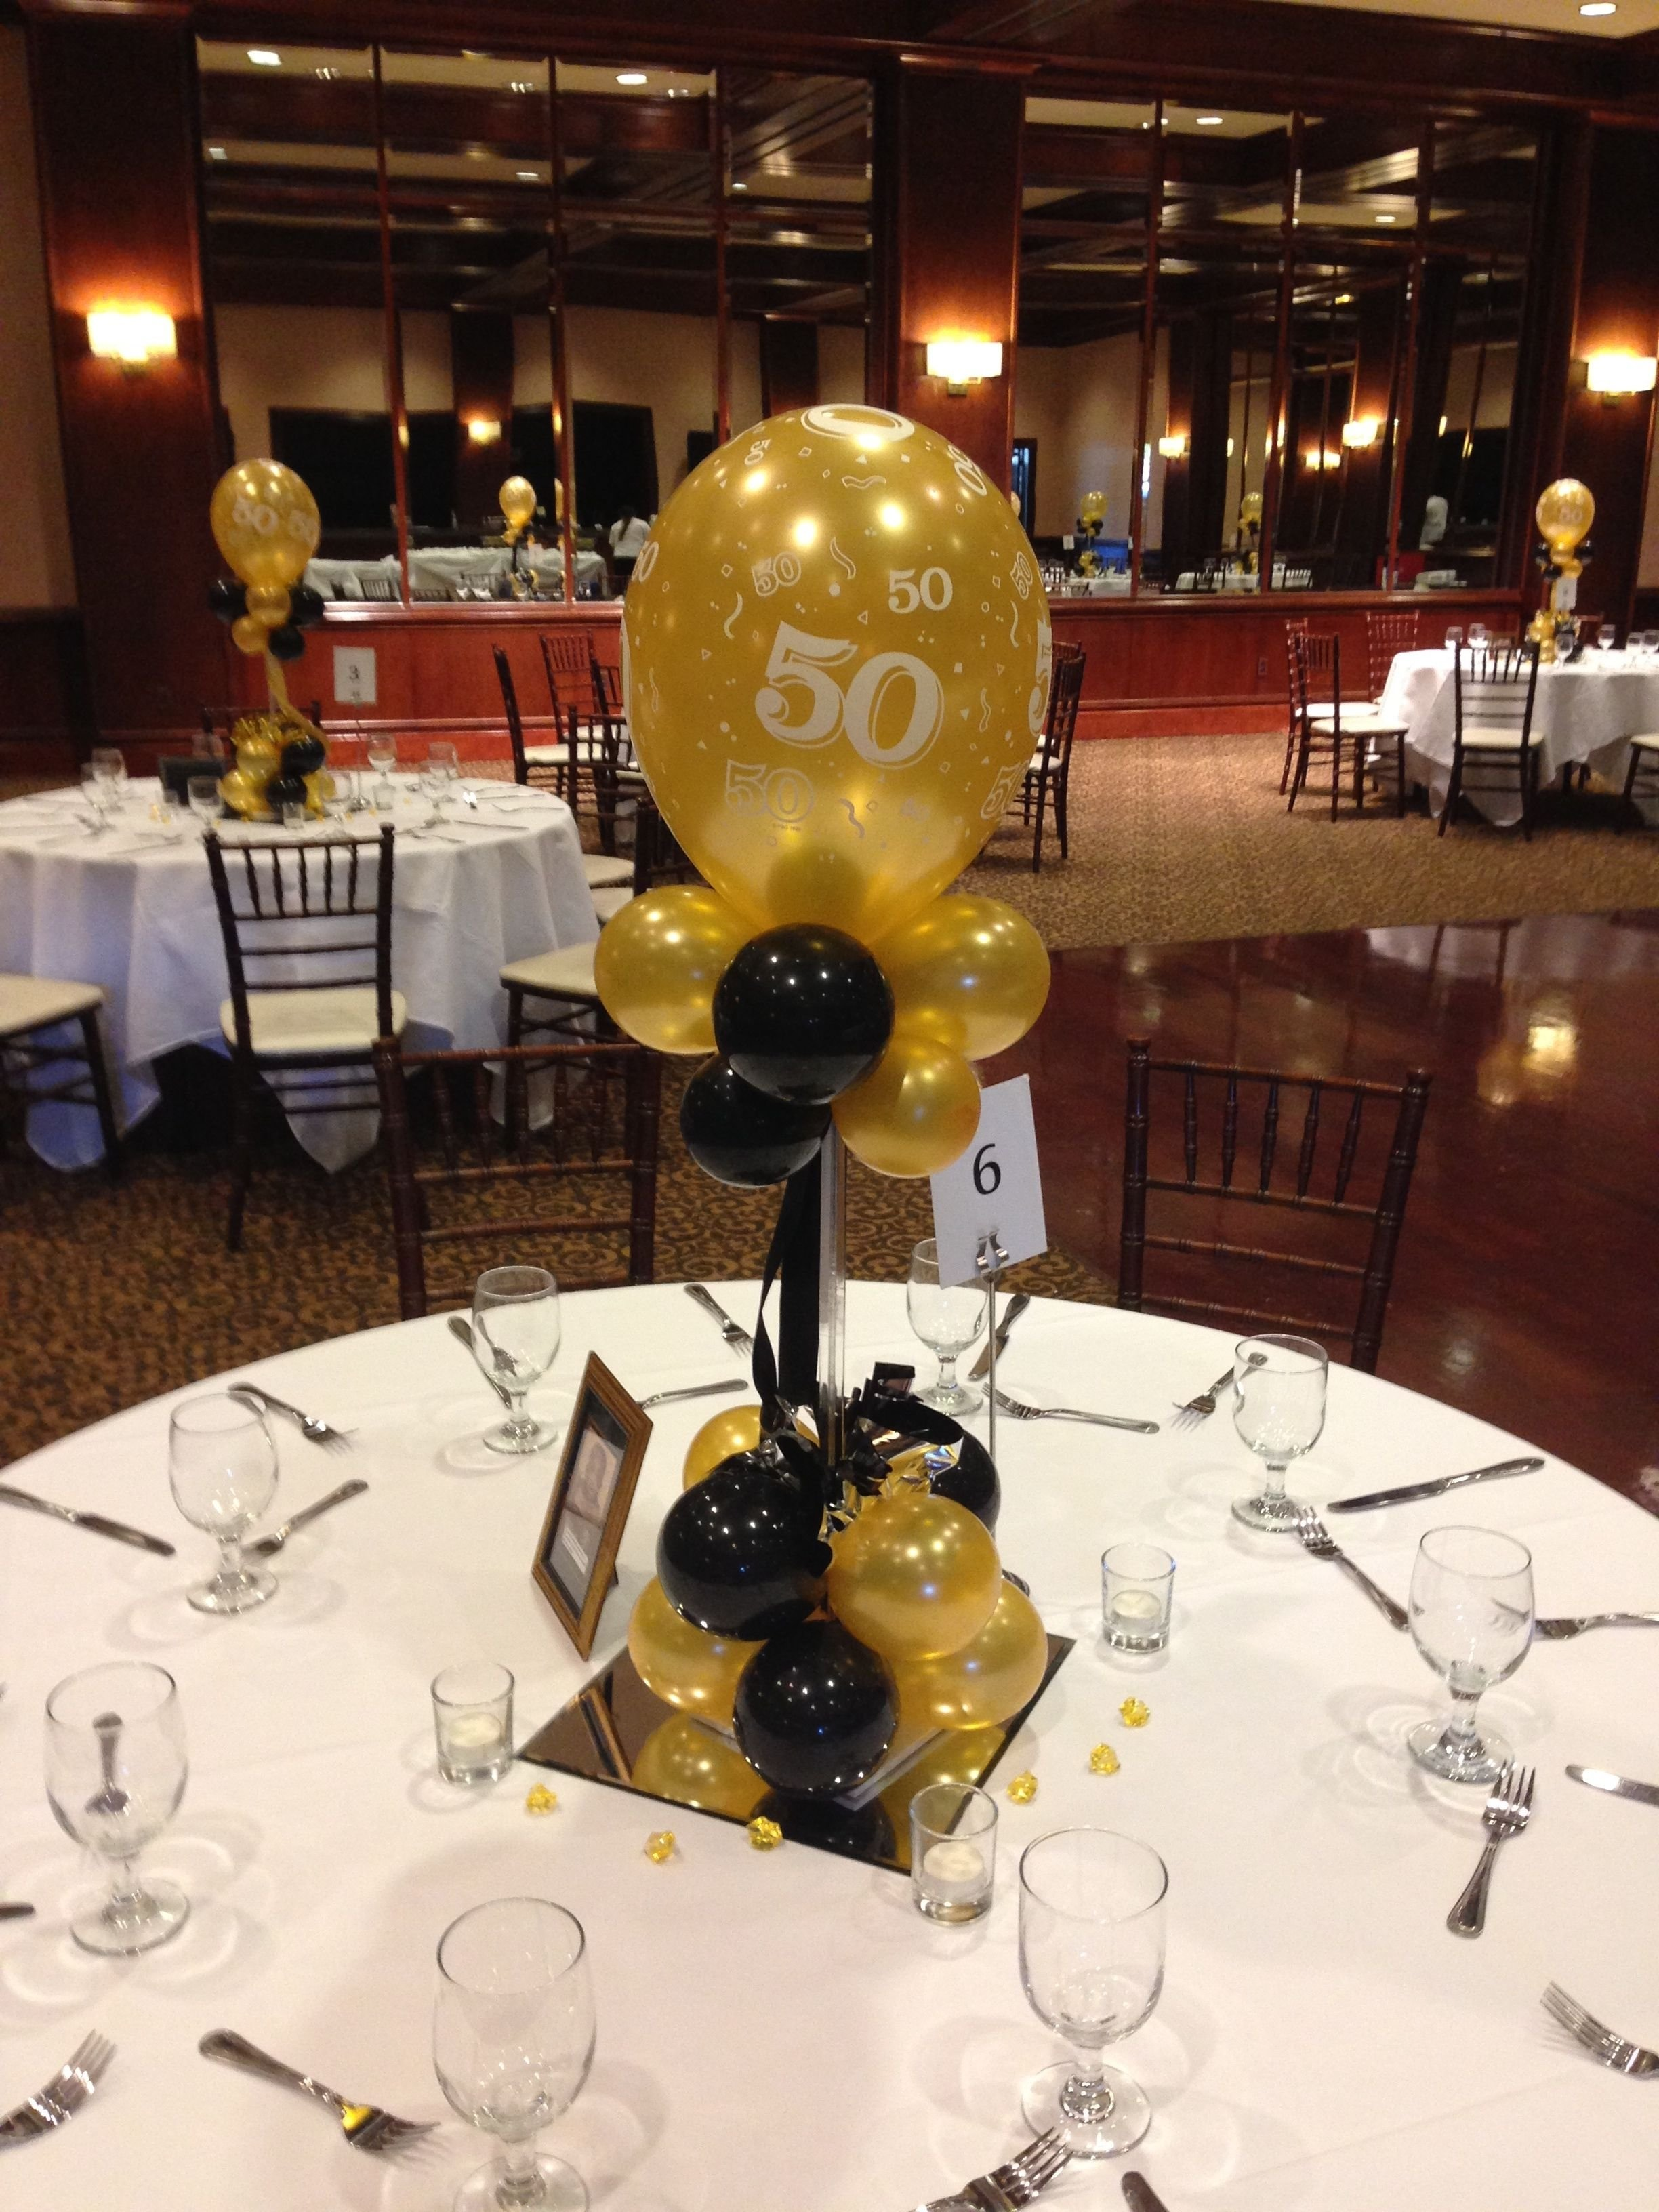 10 Stylish Party Ideas For 50Th Birthday black and gold balloon centerpieces for a 50th birthday or 10